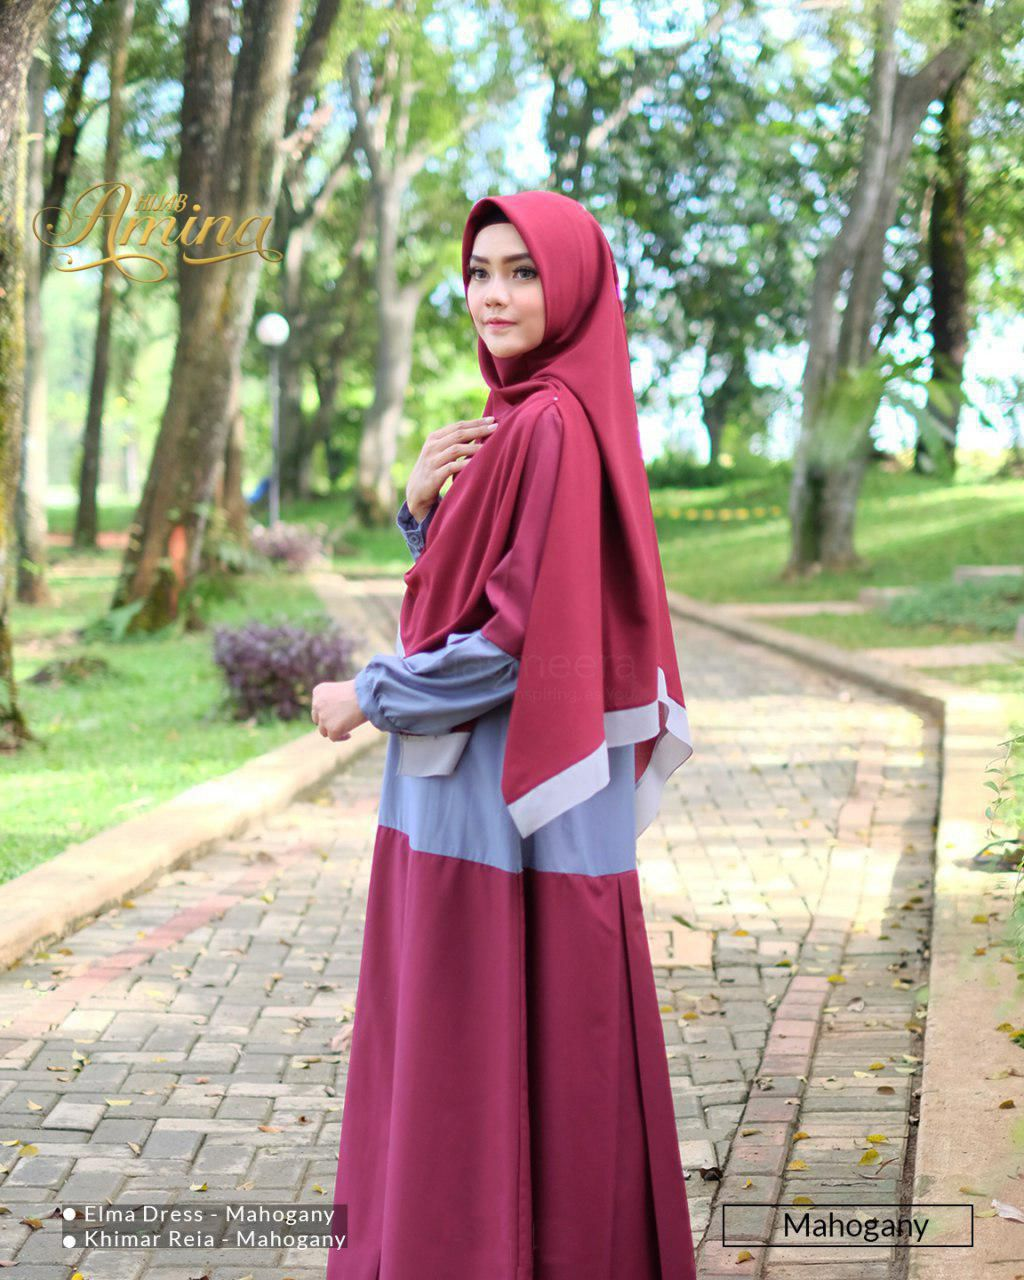 Elma Dress – Mahogany